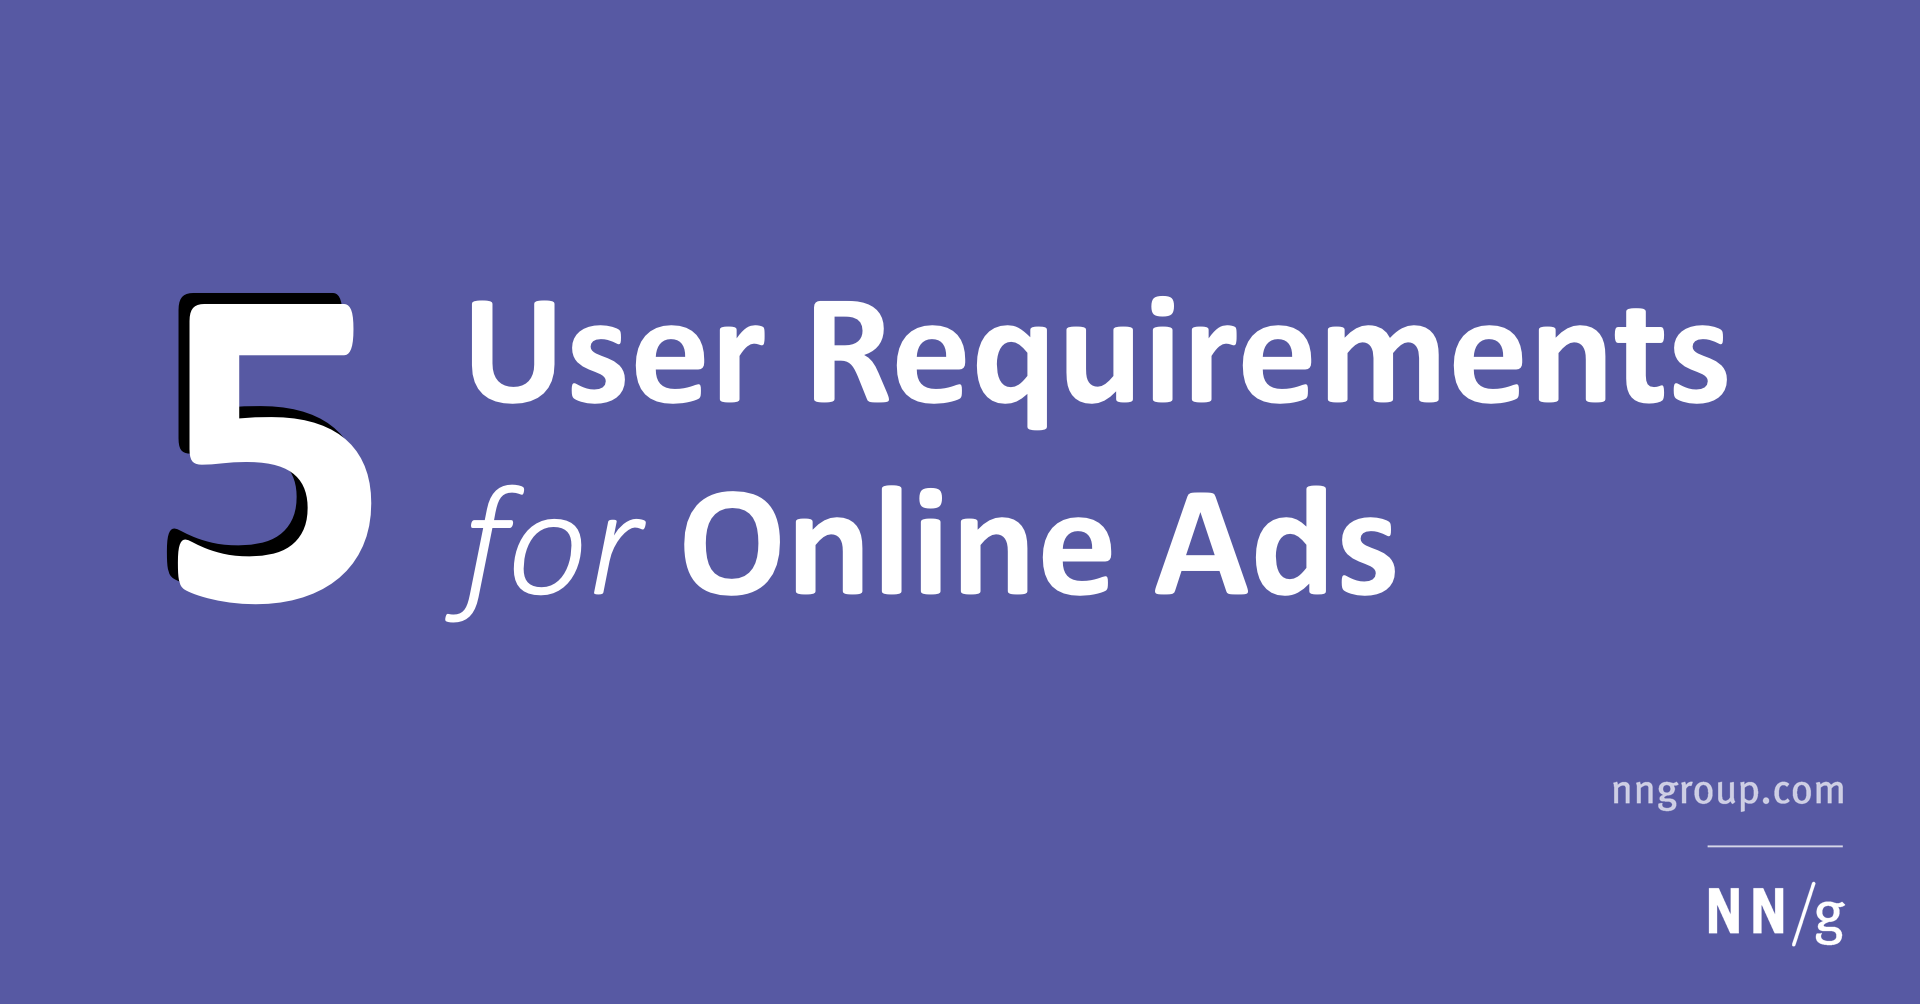 Five User Requirements For Online Ads - User requirements